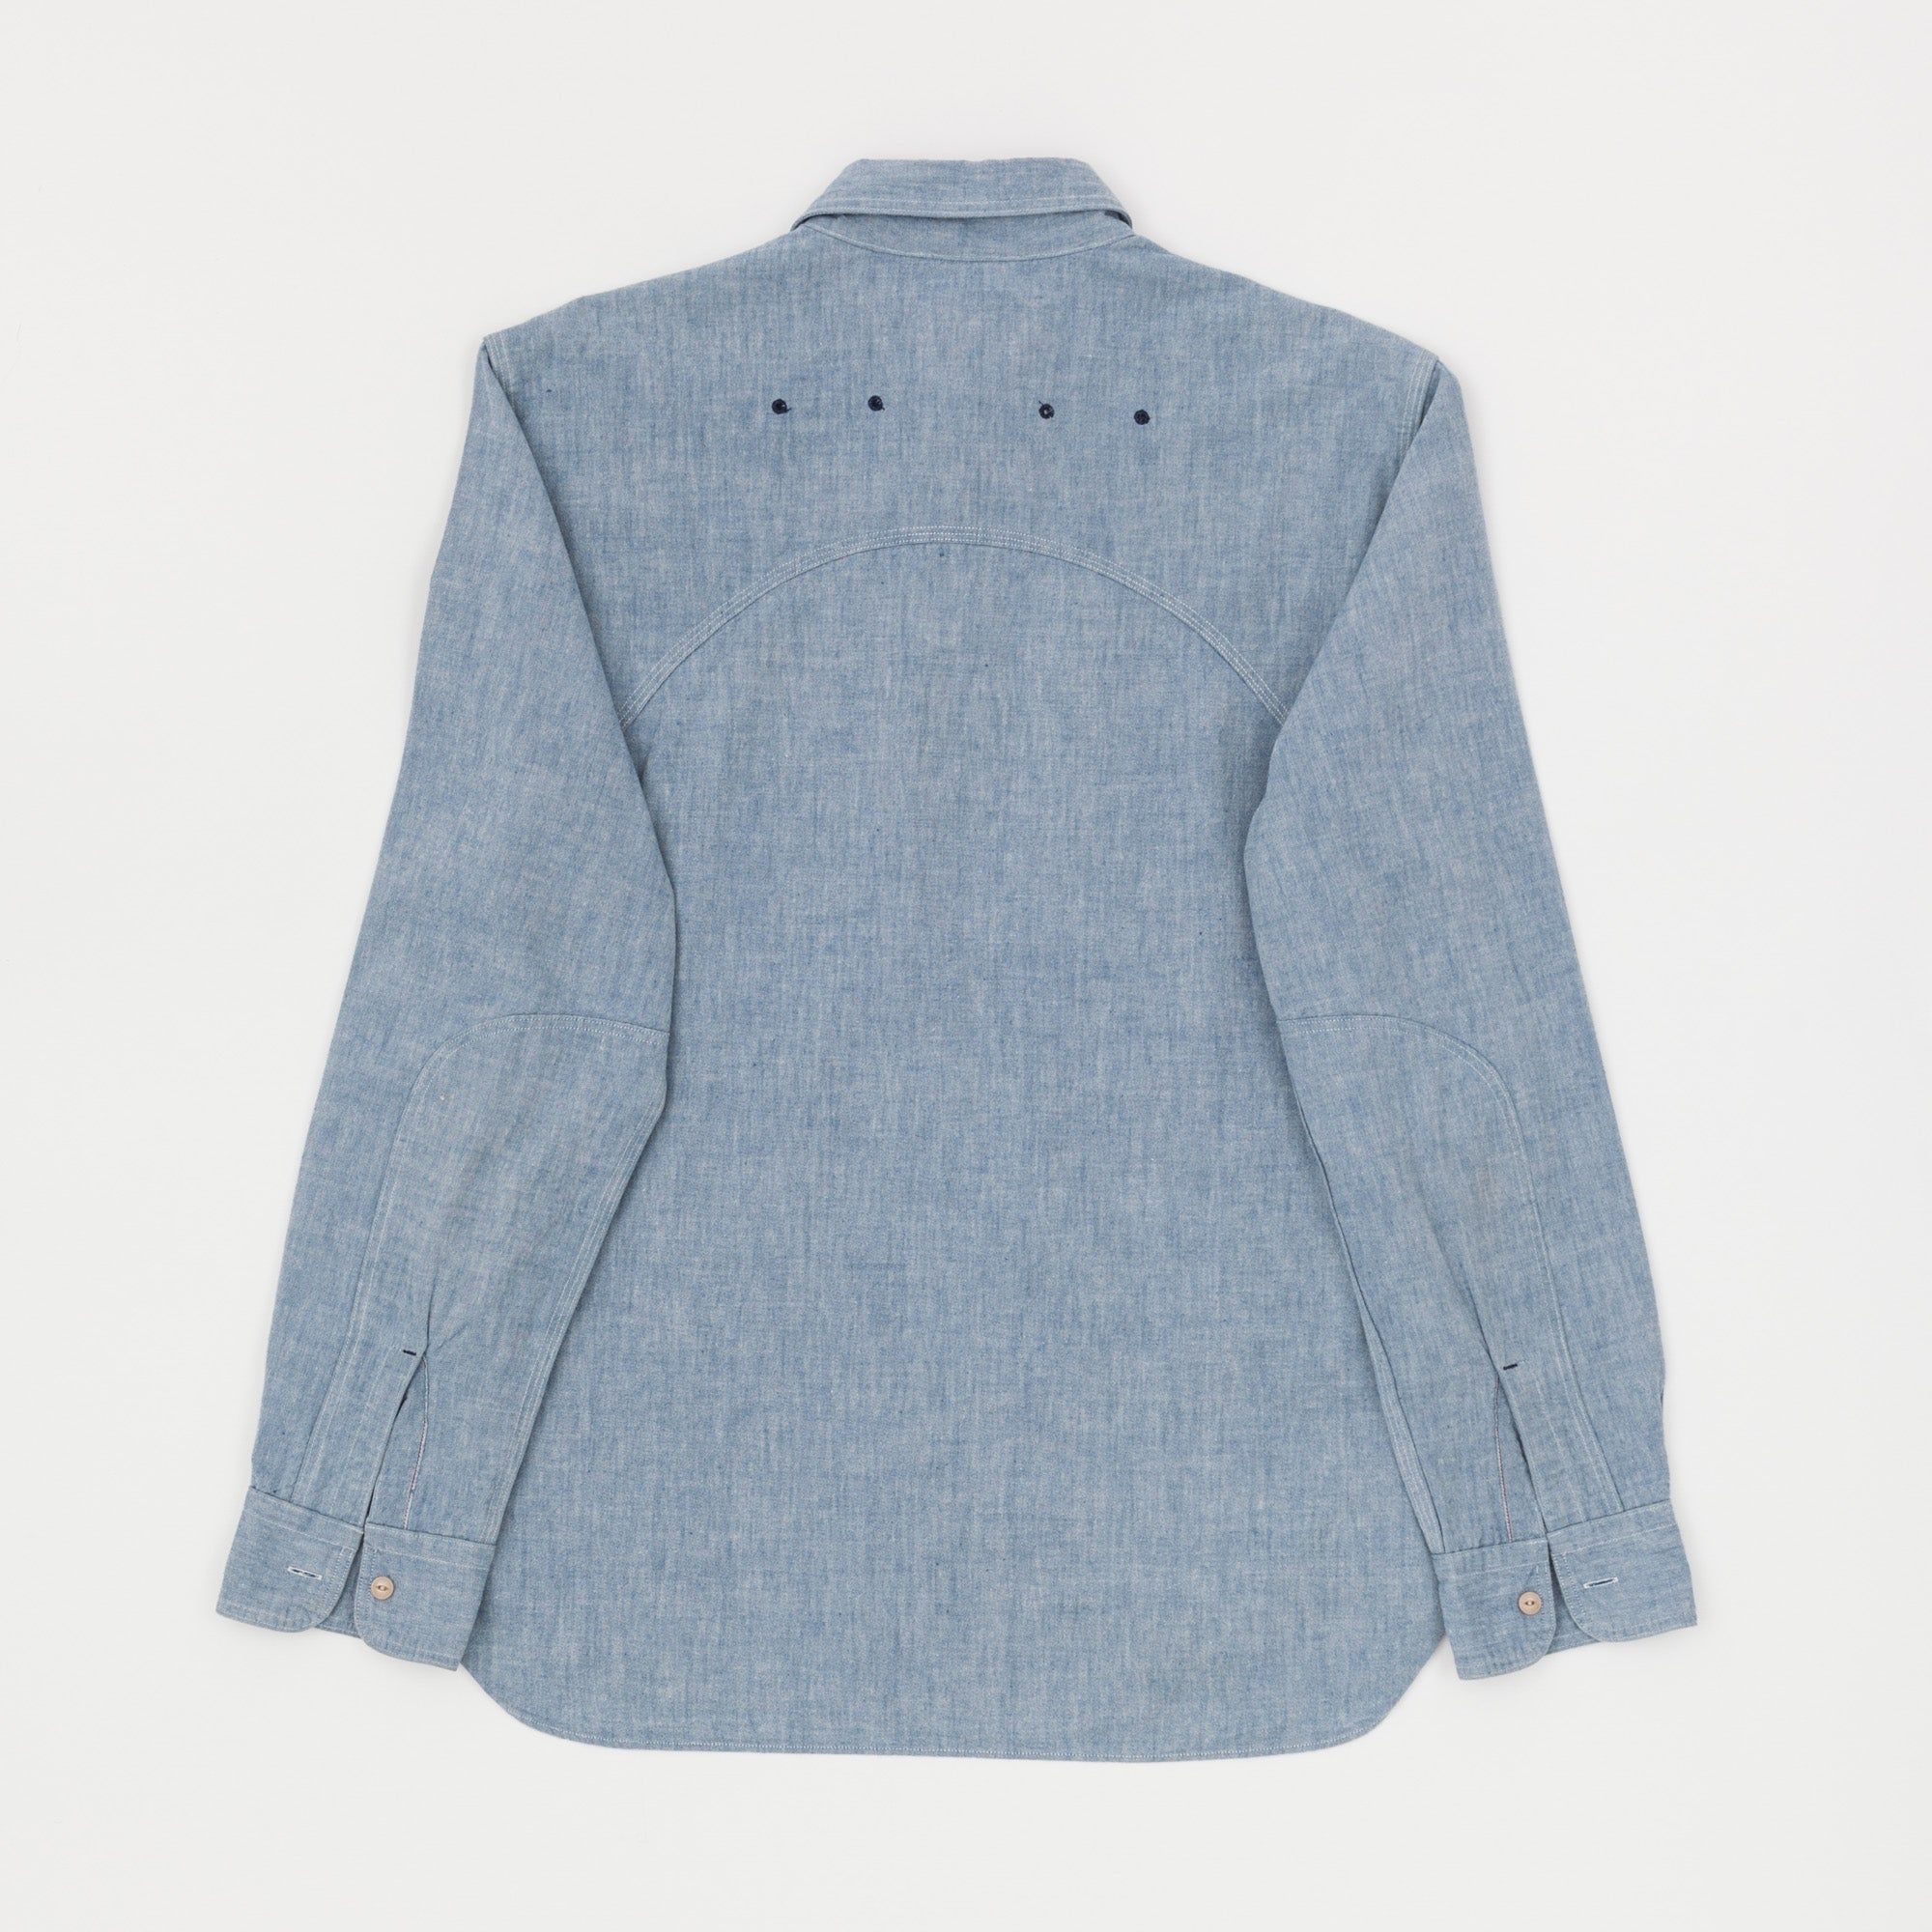 Mainline Denim Medical Shirt